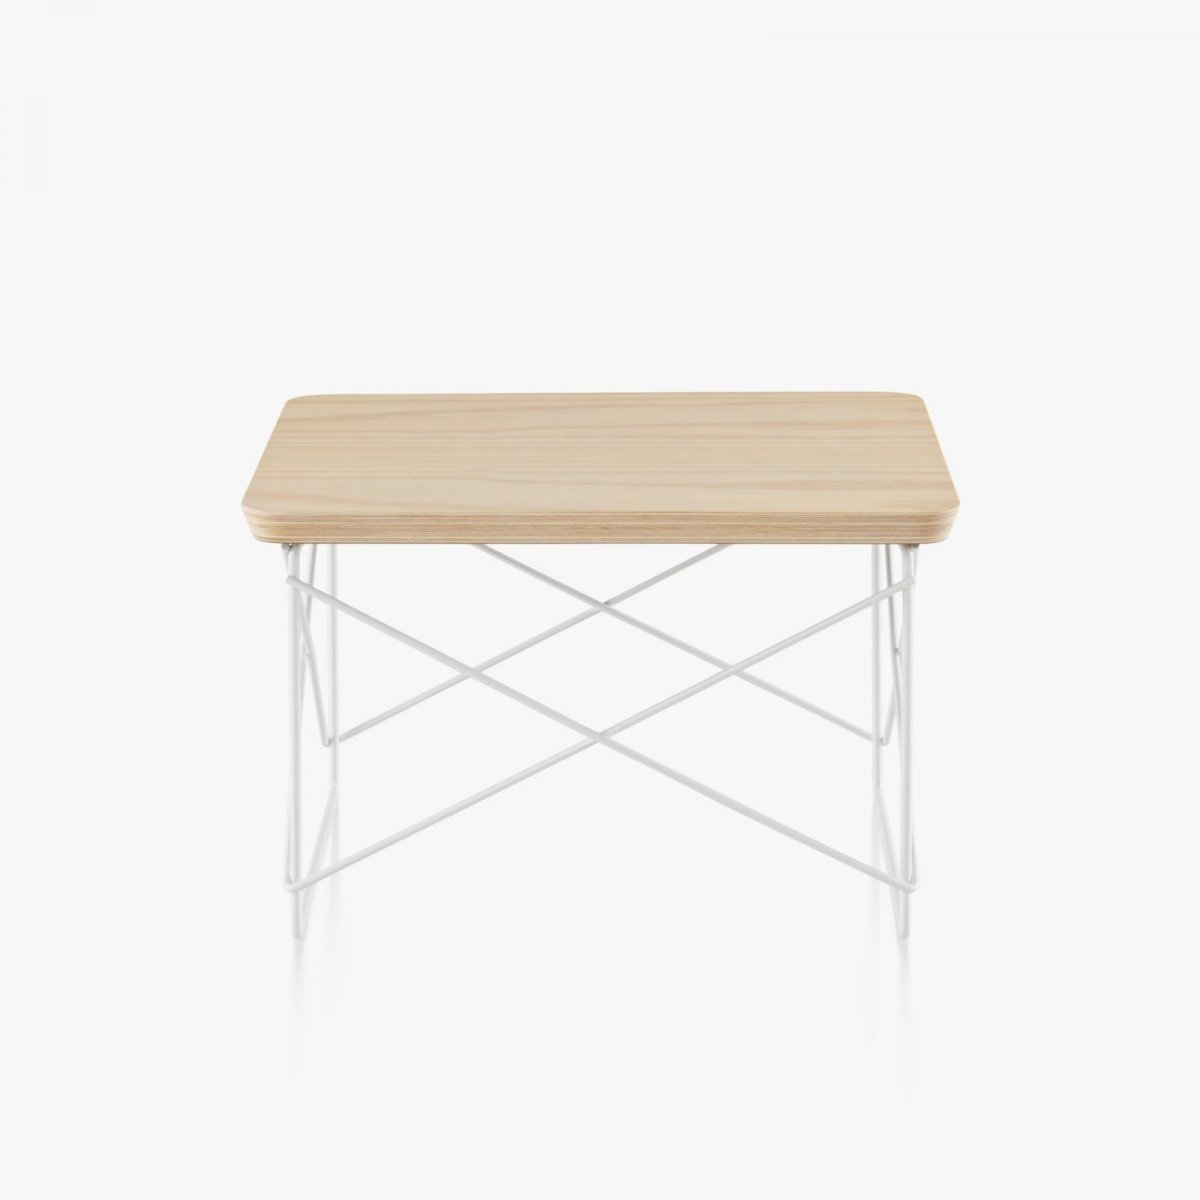 Eames Wire Base Low Table, white ash top with white base.